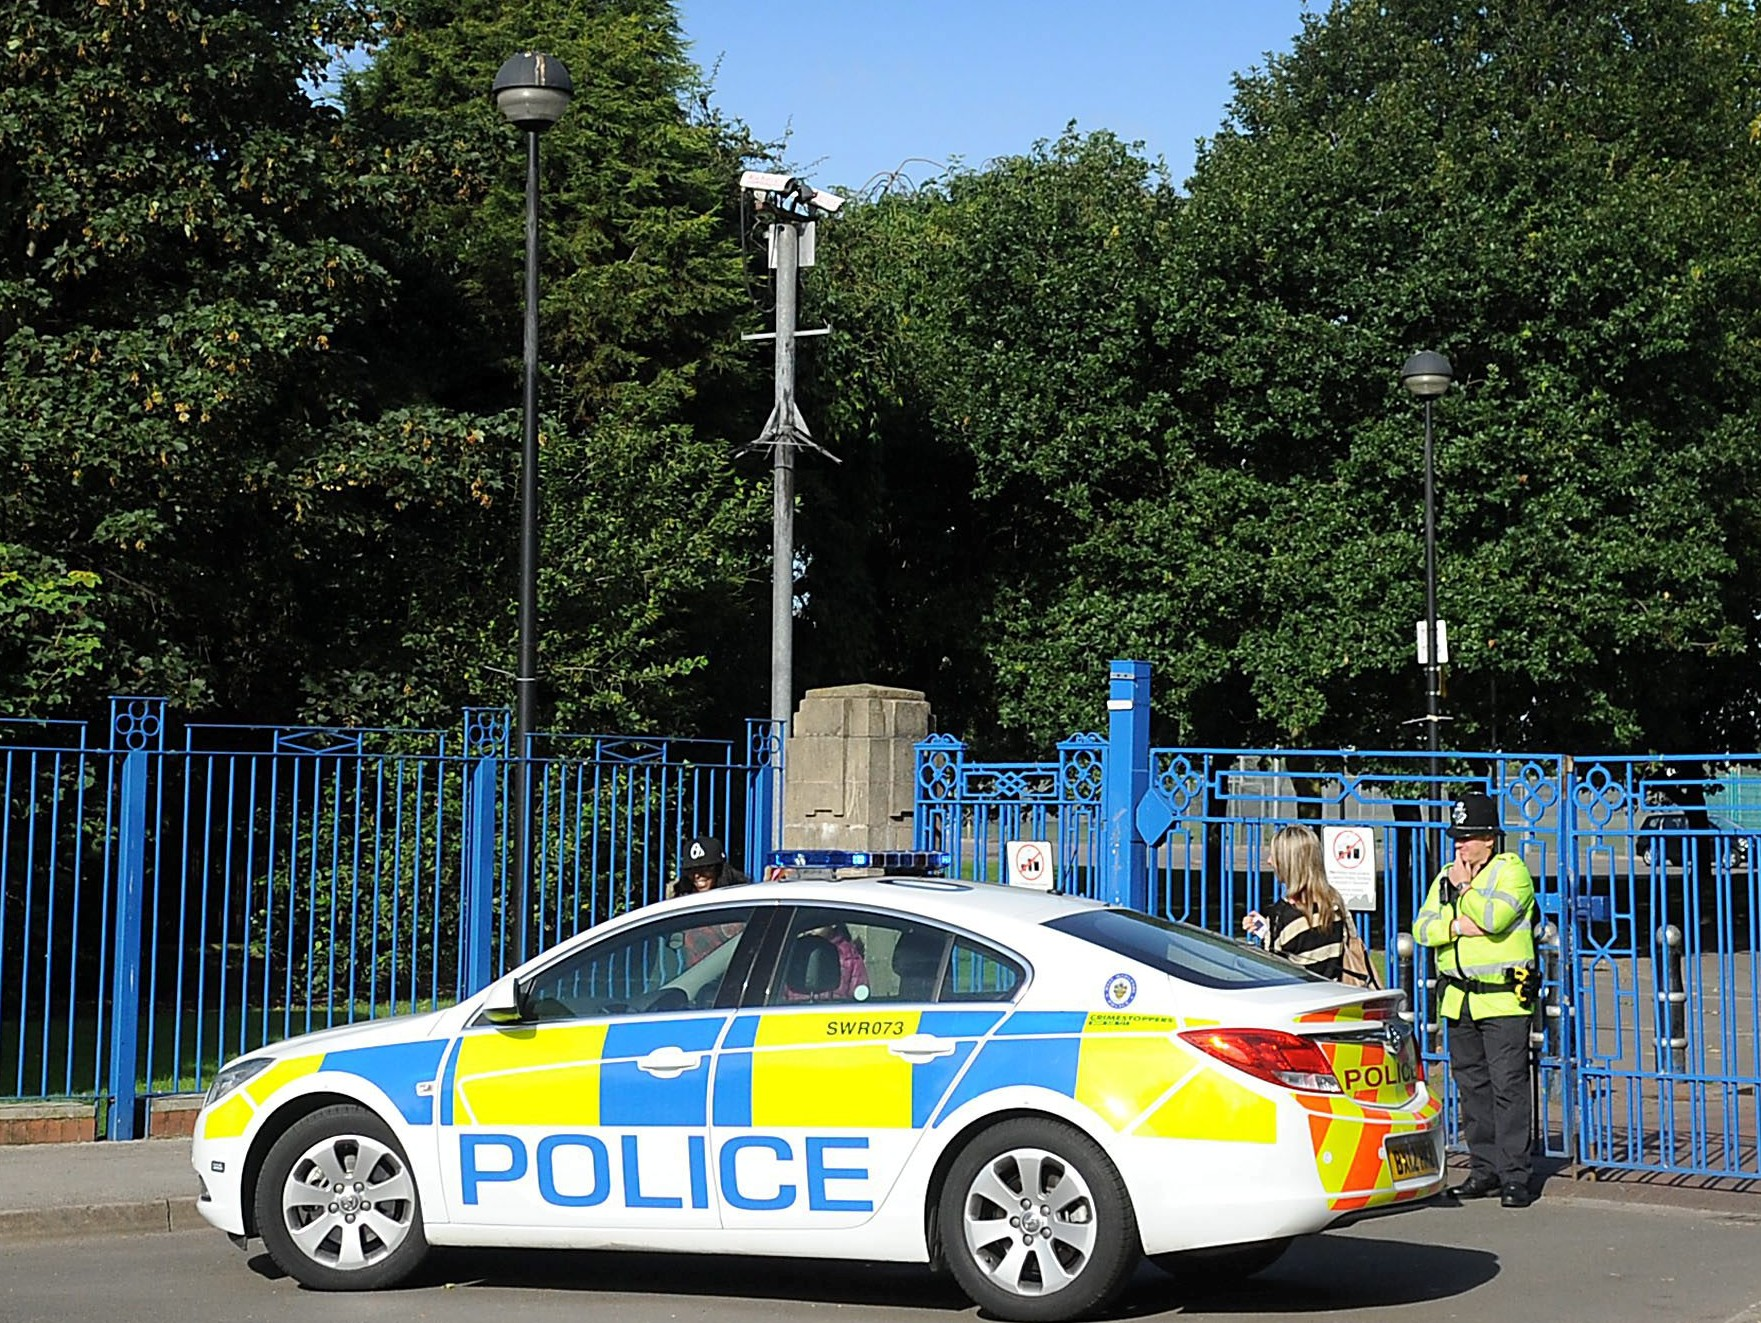 Police outside the park in Tipton, West Midlands, after Parkes mowed down his suspected love rival